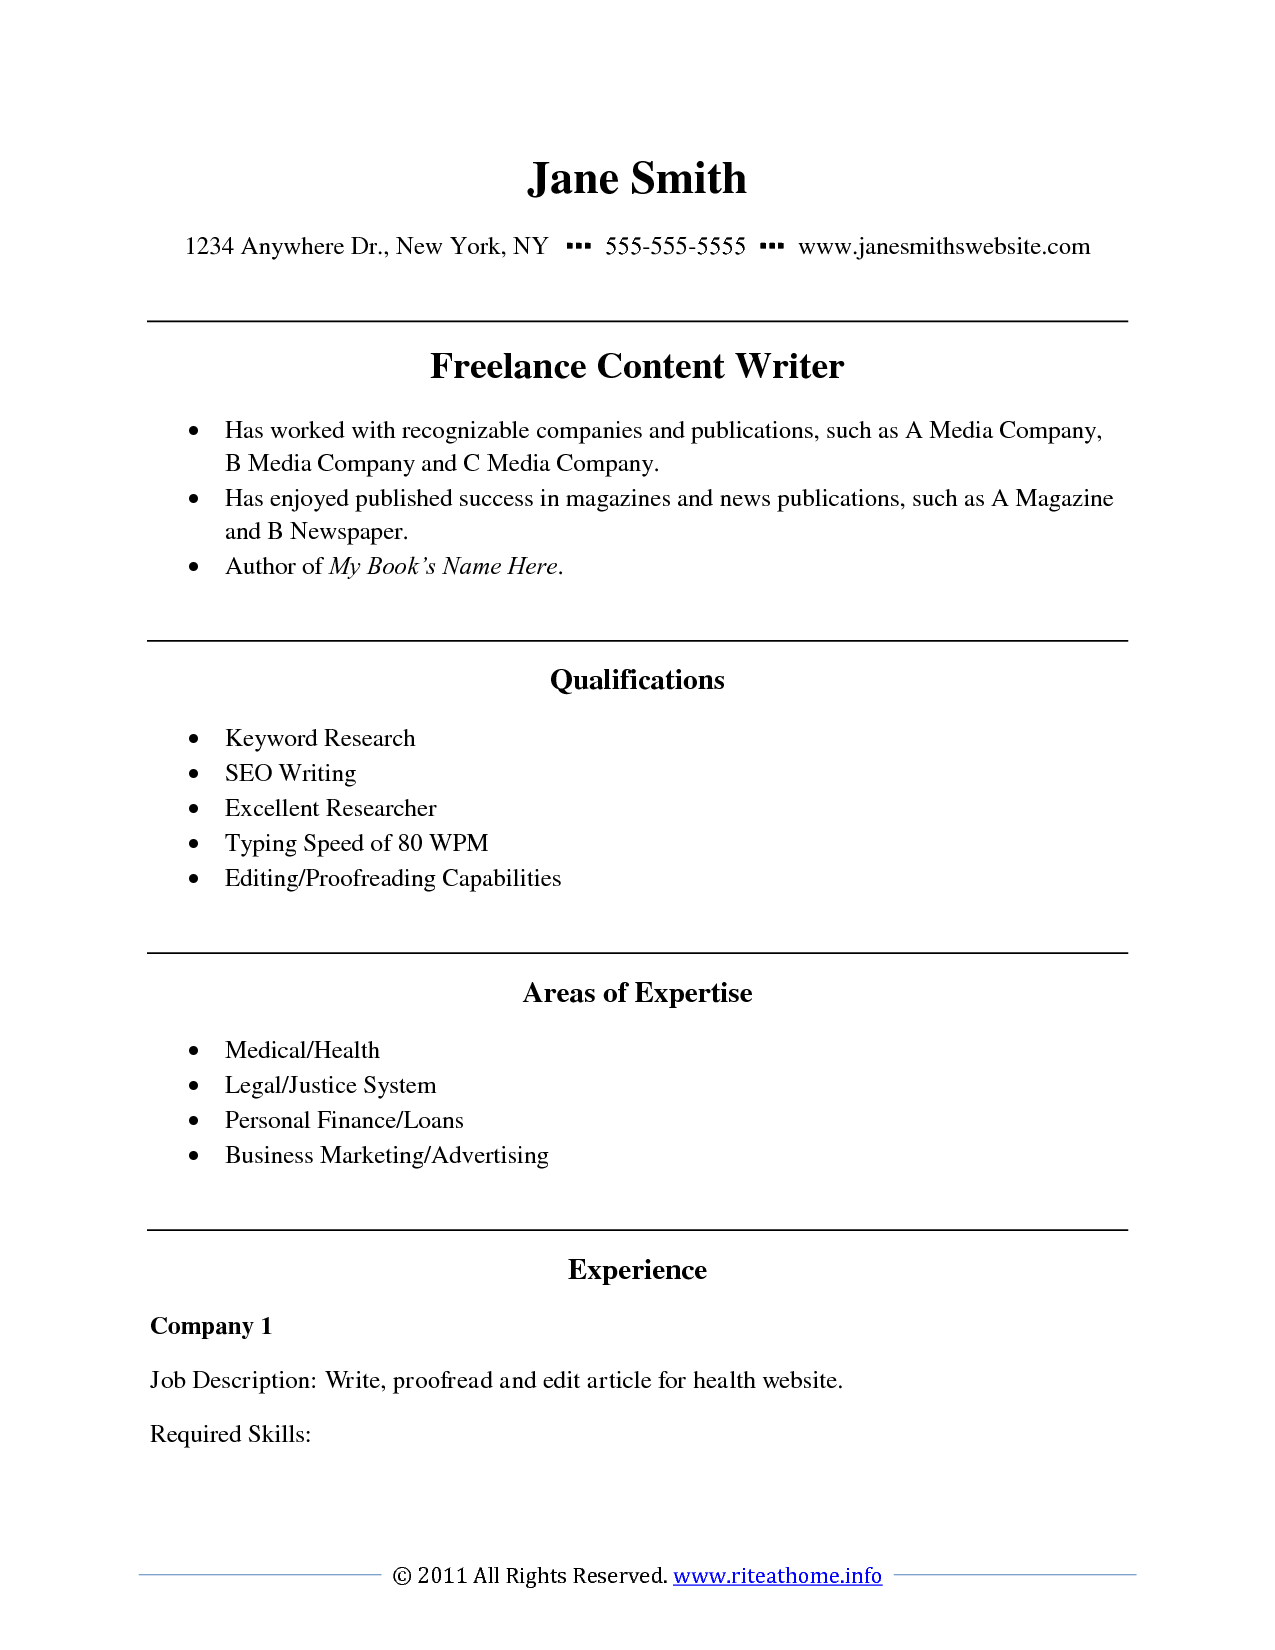 Resume Writing Examples Sample Resumes HDWriting A Resume Cover Letter  Examples